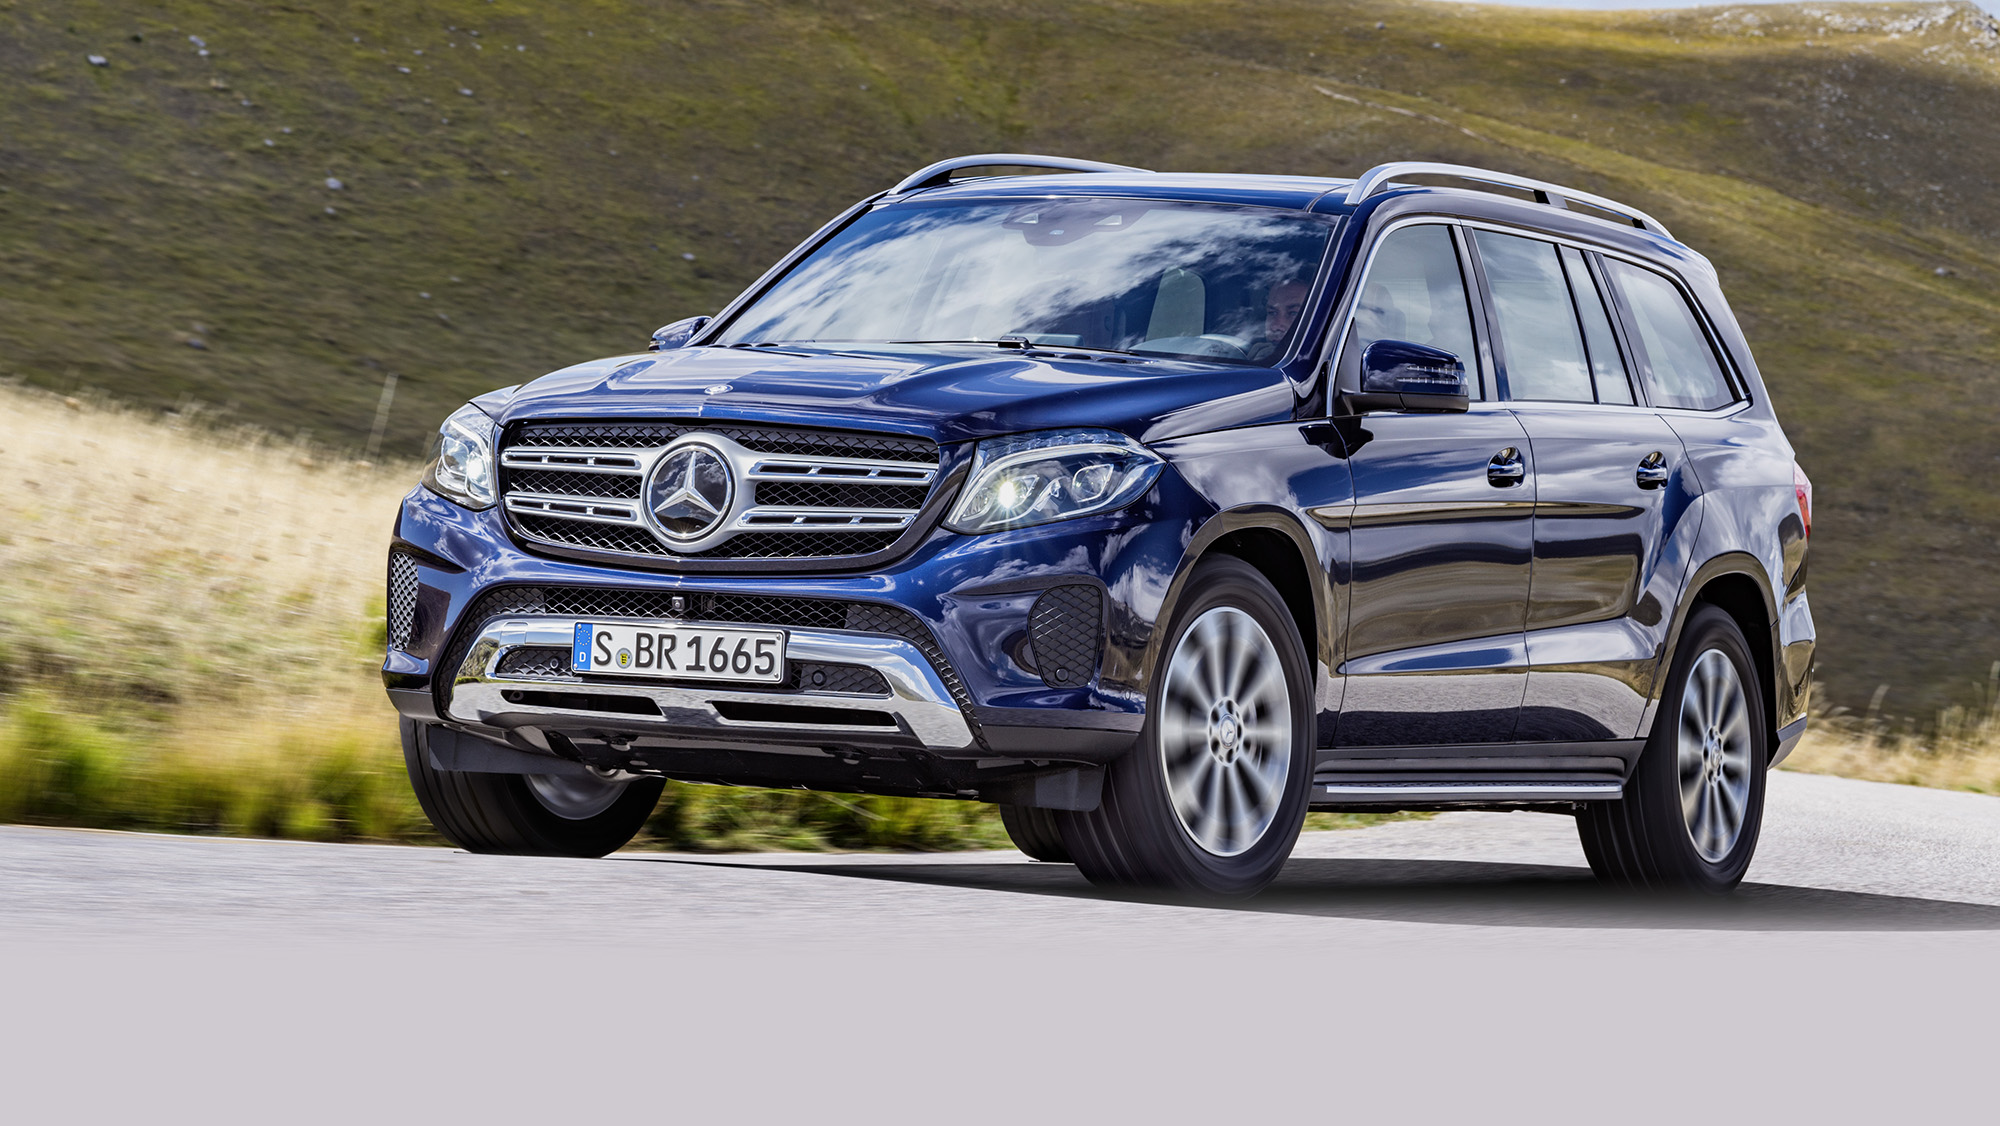 2016 mercedes benz gls revealed big gl gets new name new look photos 1 of 24. Black Bedroom Furniture Sets. Home Design Ideas